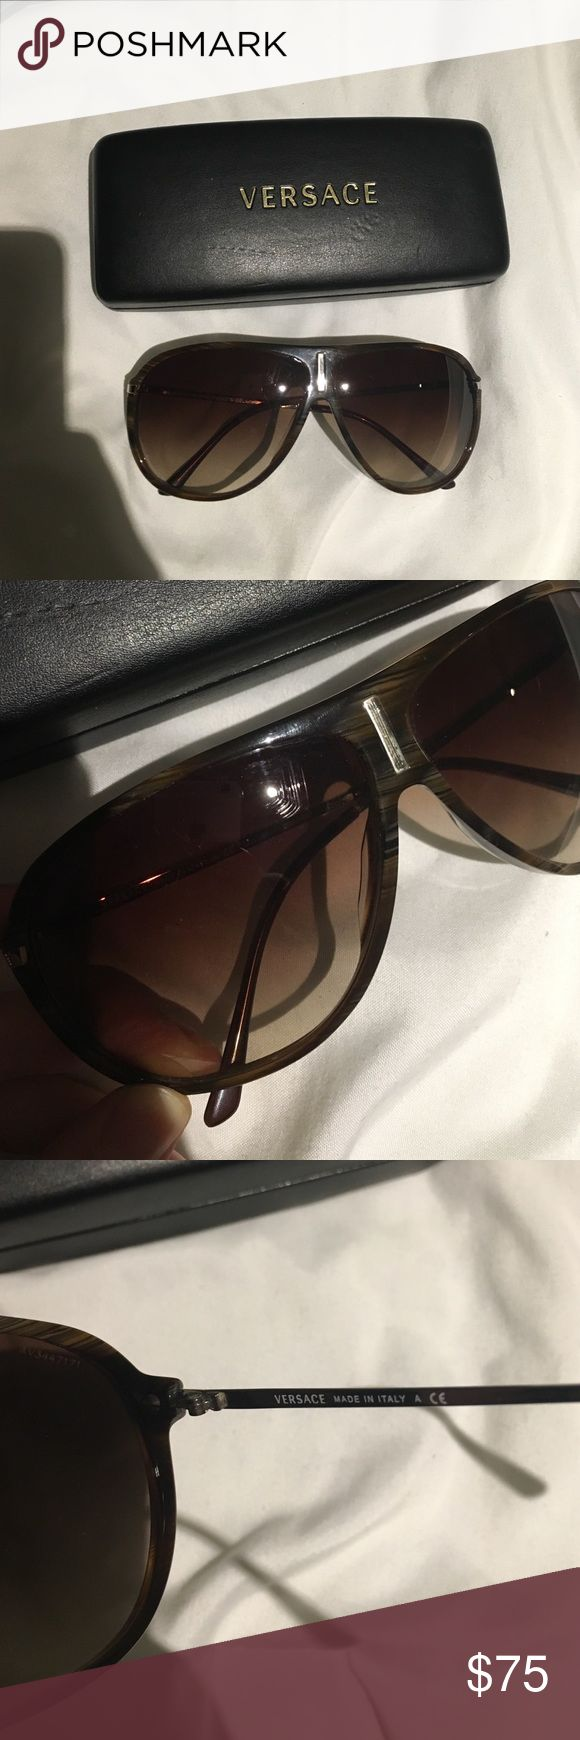 Versace aviator sunglasses Scratch on lens - may be able to replace. Versace Accessories Sunglasses